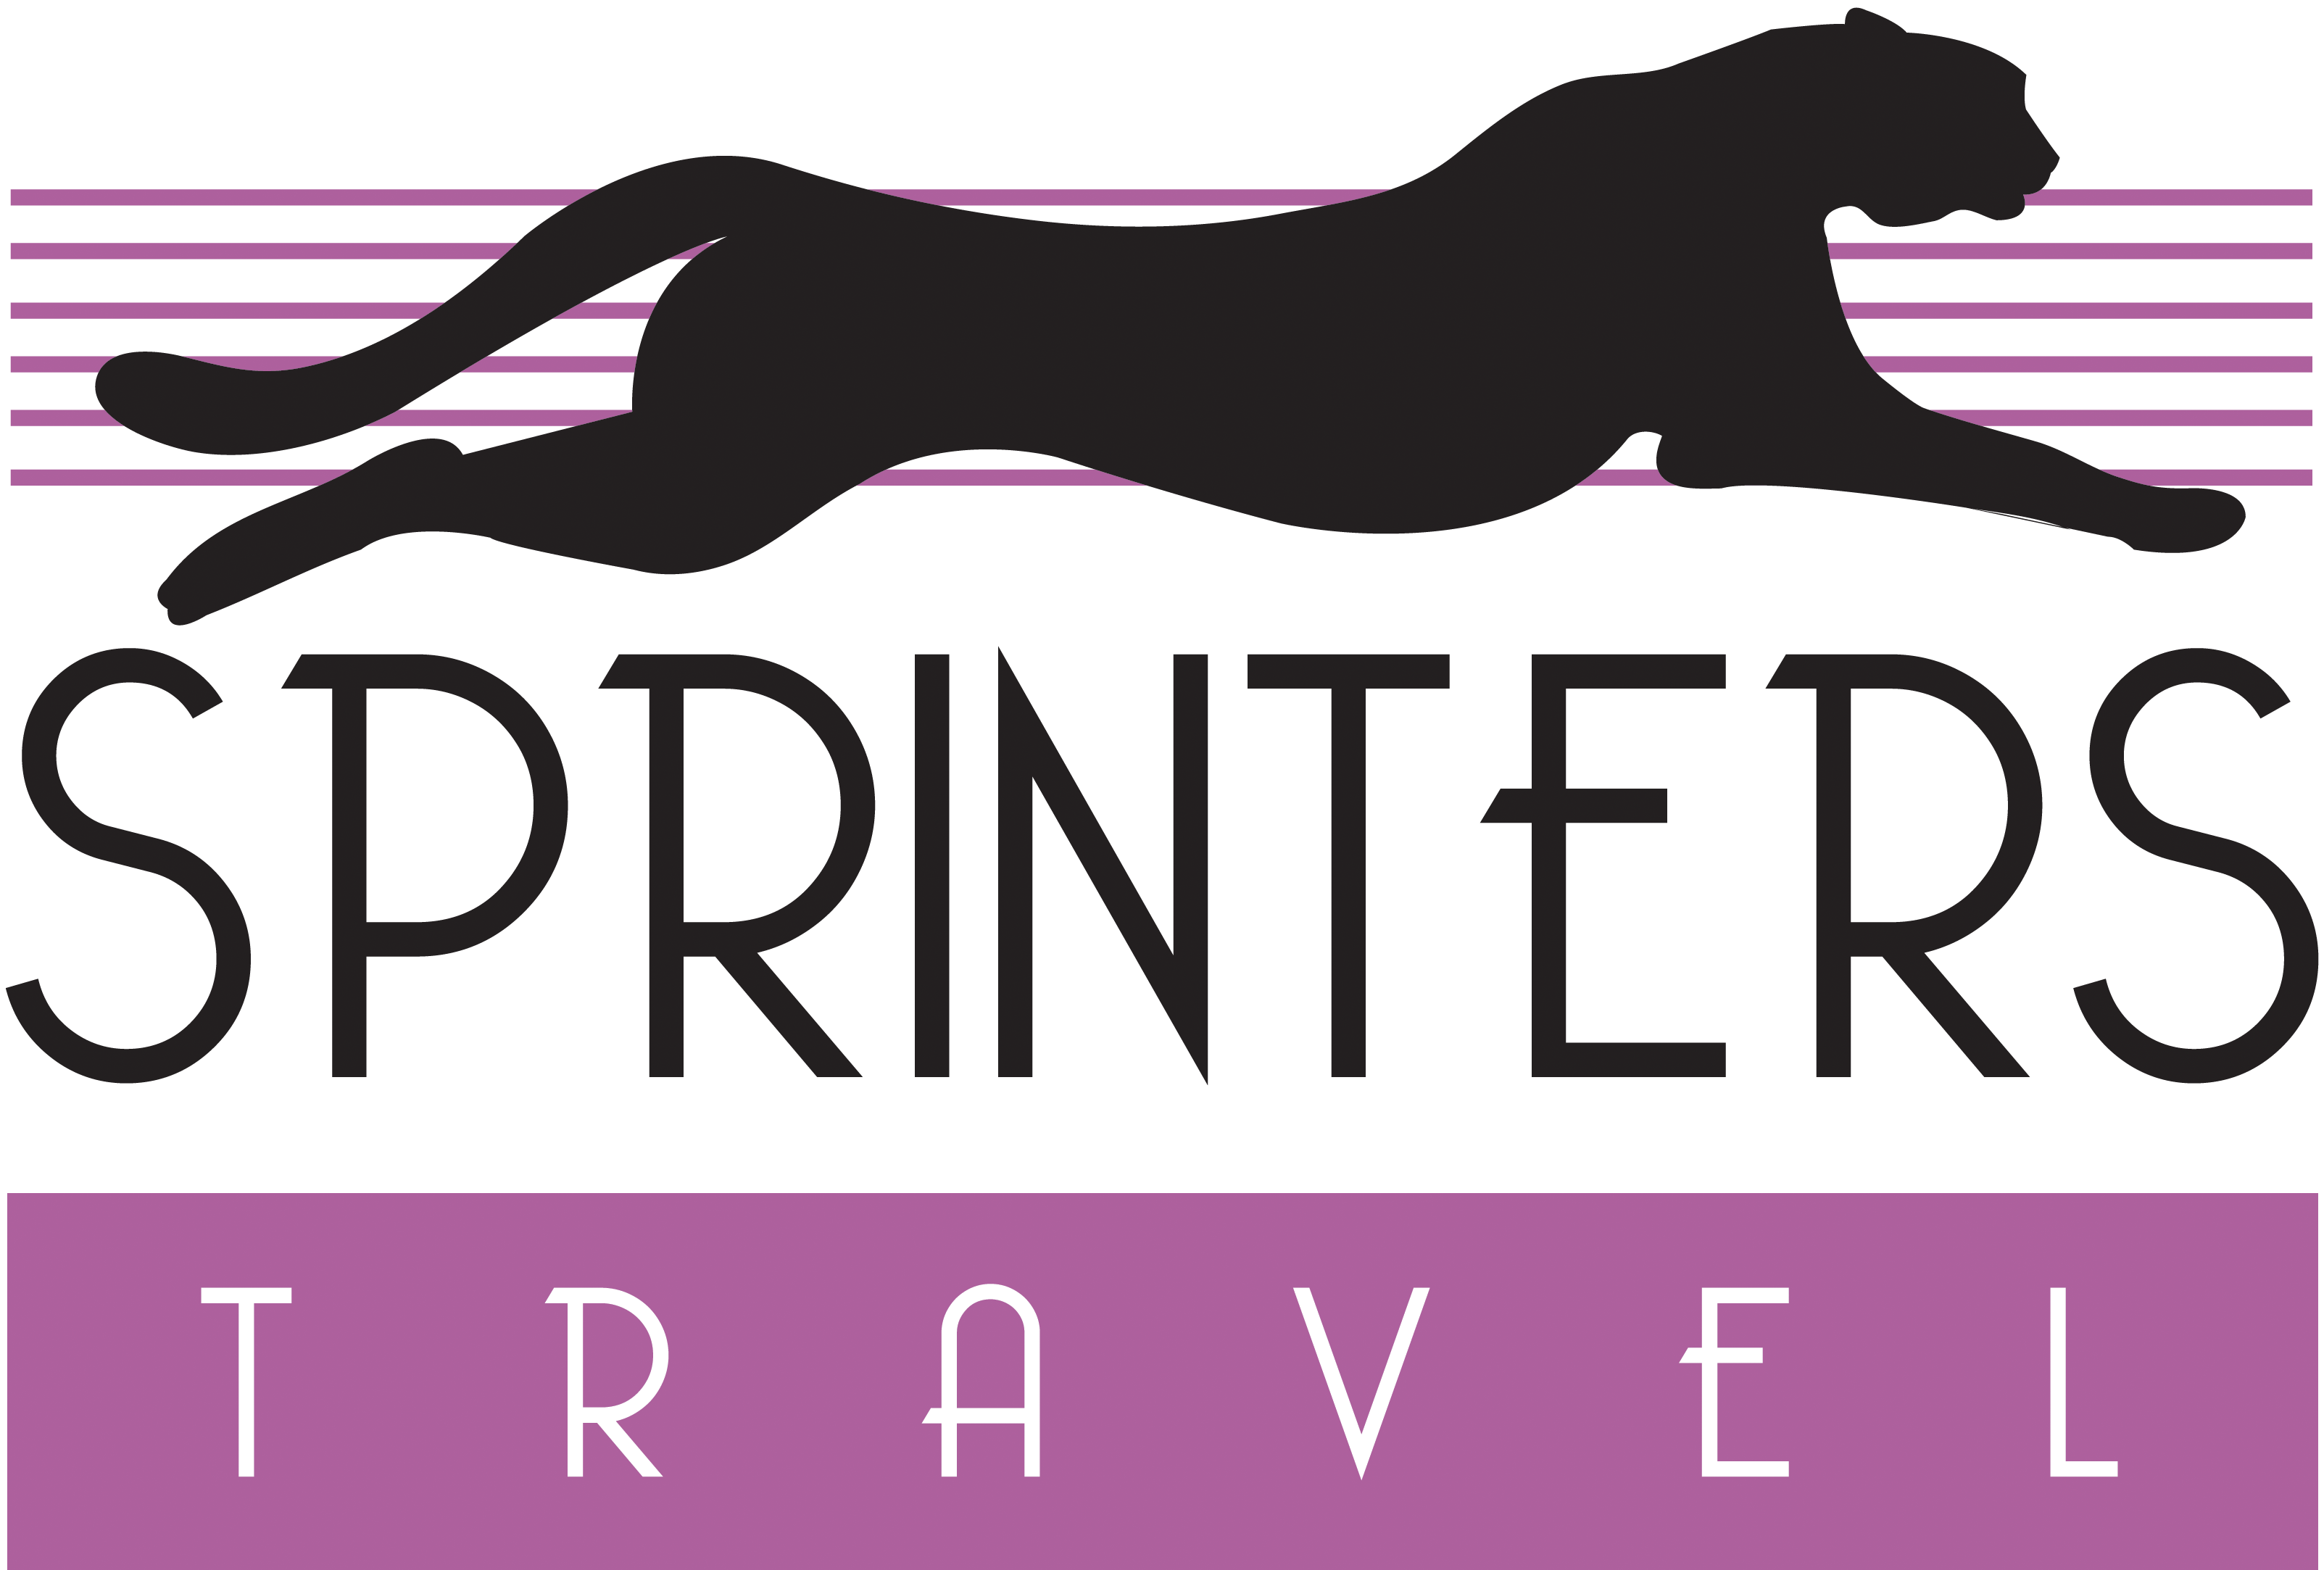 Sprinters Travel | Airport shuttle minibuses - Sprinters Travel - Minibus hire with drivers